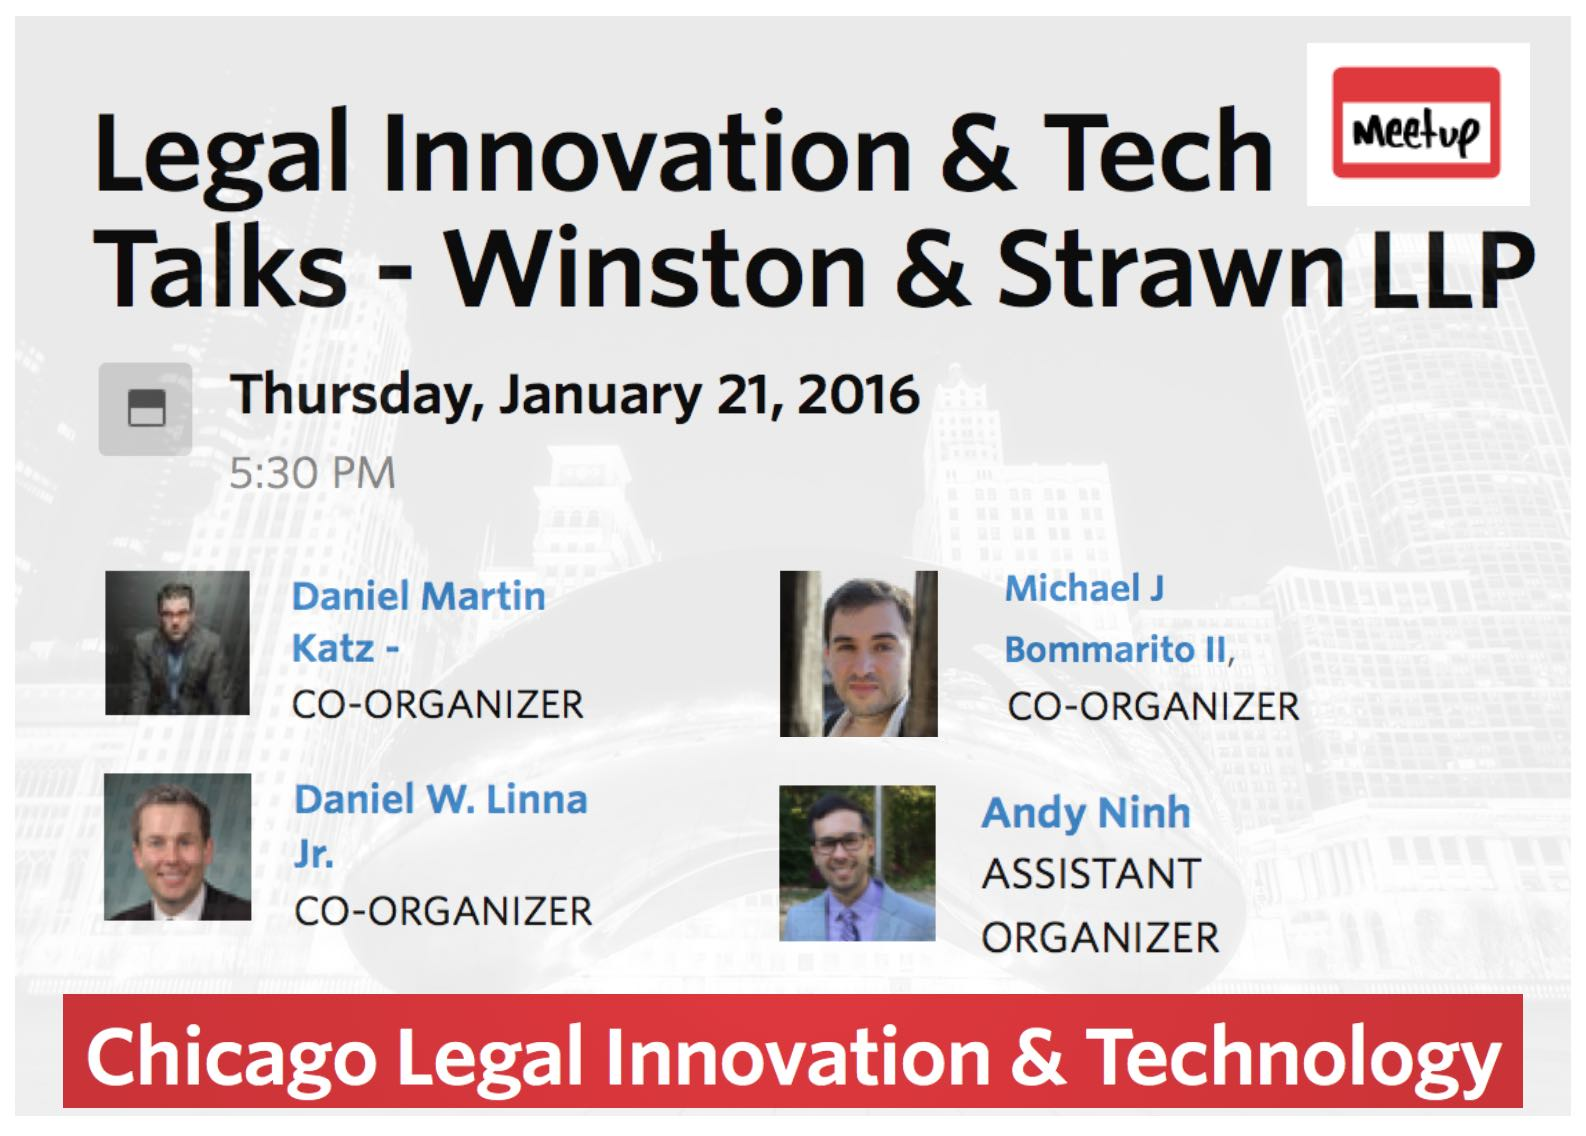 http://www.meetup.com/Chicago-Legal-Innovation-and-Technology-Meetup/events/227148258/